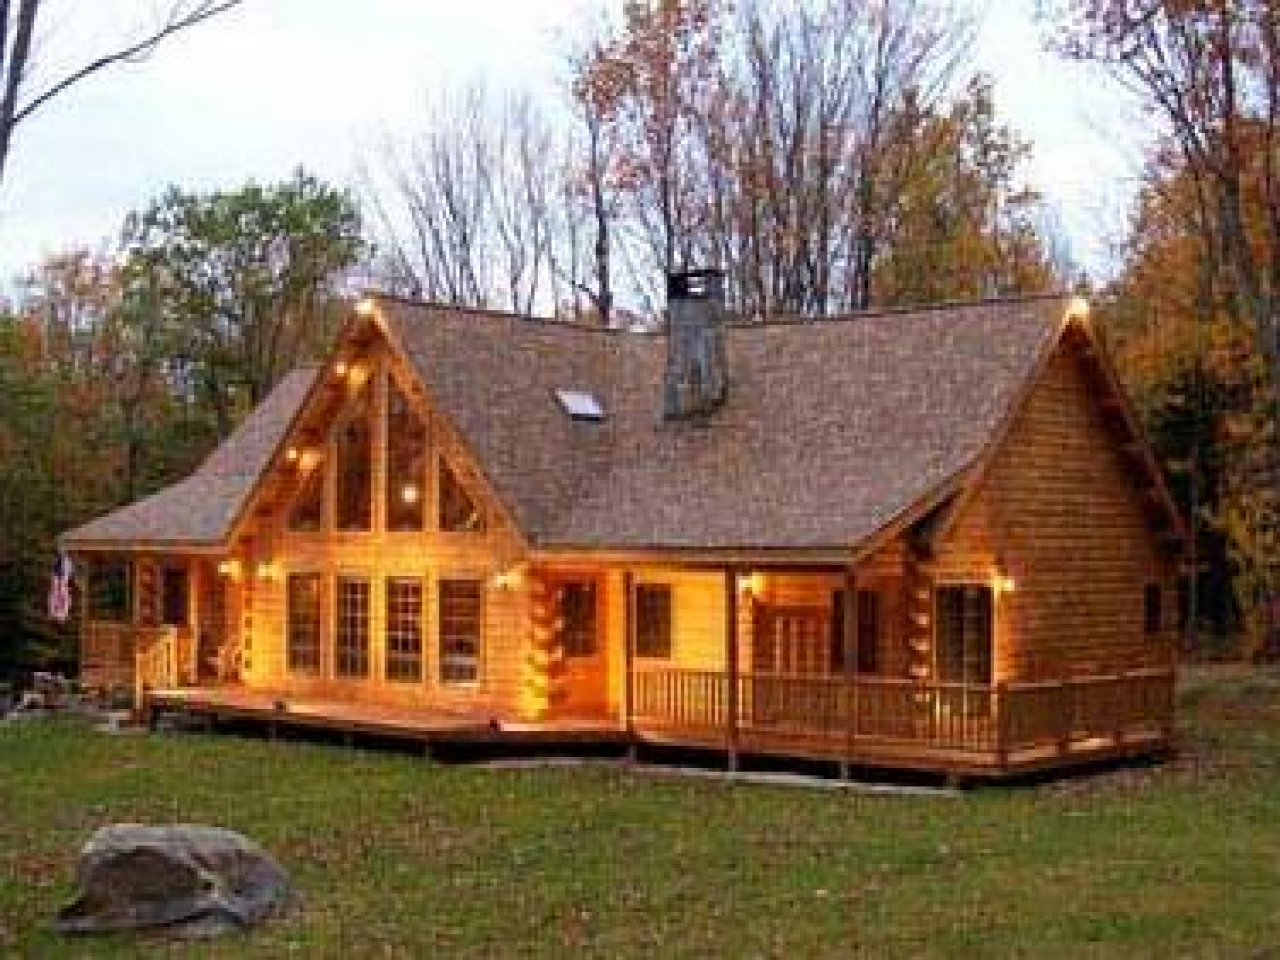 Cedar log home designs cedar cabins one story log cabins for One story log homes